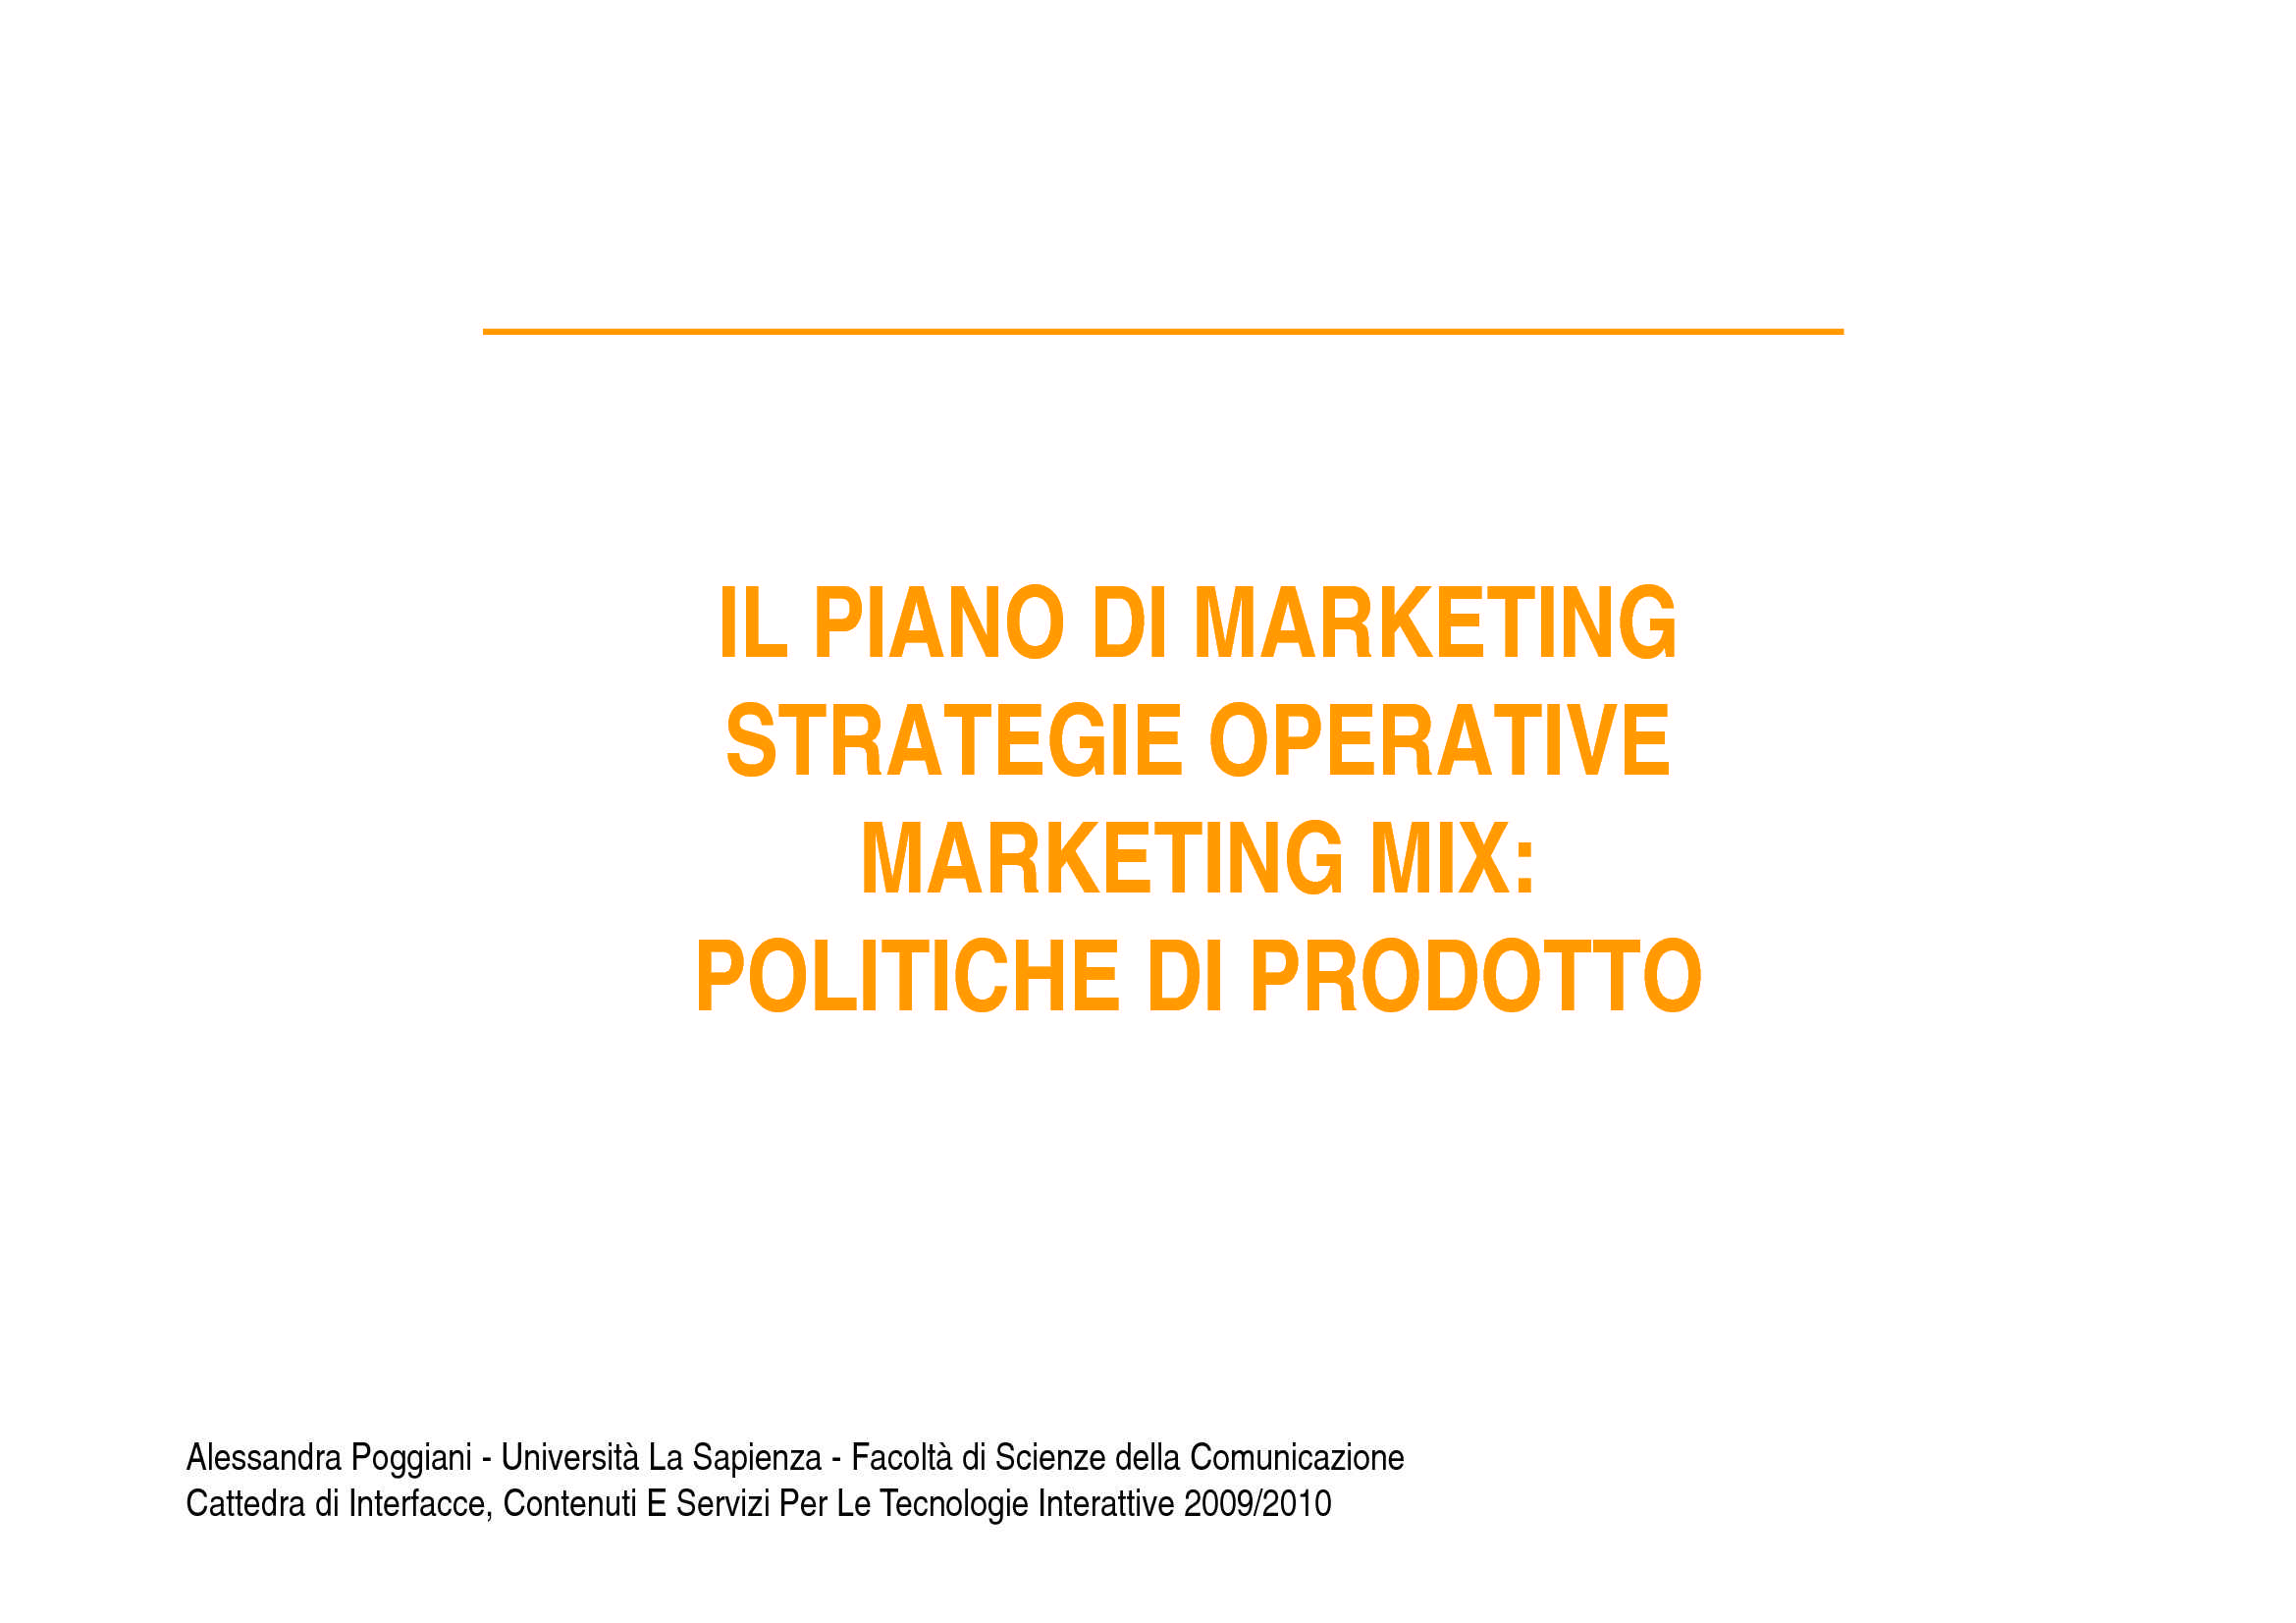 Marketing Mix - Politiche di prodotto